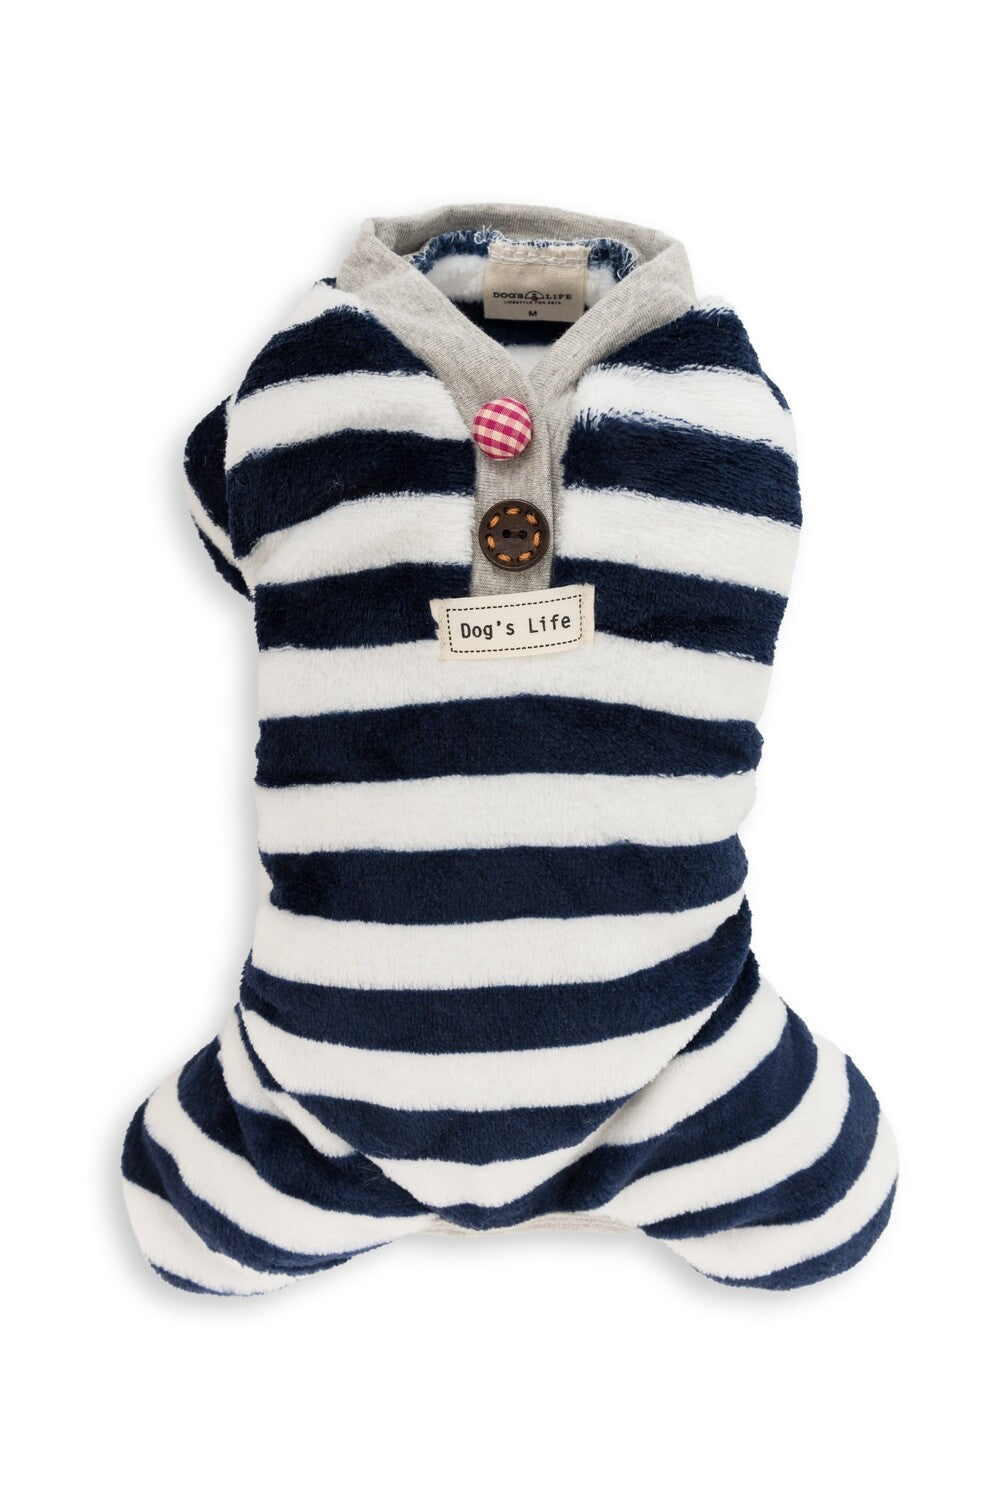 Dog's Life Sweet Candy Stripe PJ - Blue